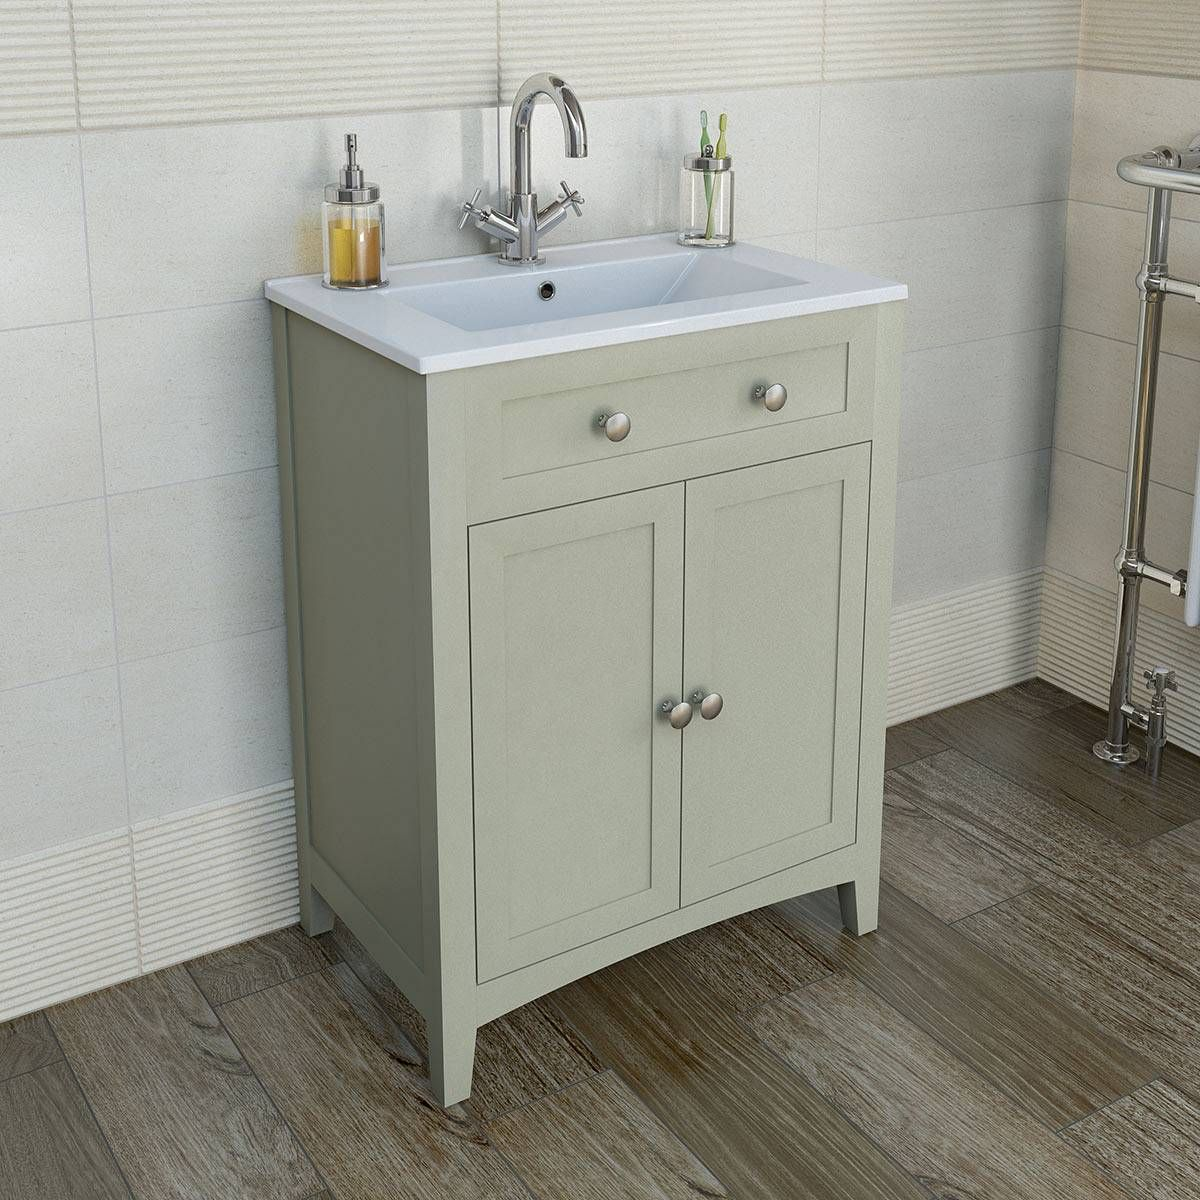 Bathroom sinks with options for everyone - A Traditional Sage Basin Storage Unit Completes The Traditional Style Bathroom